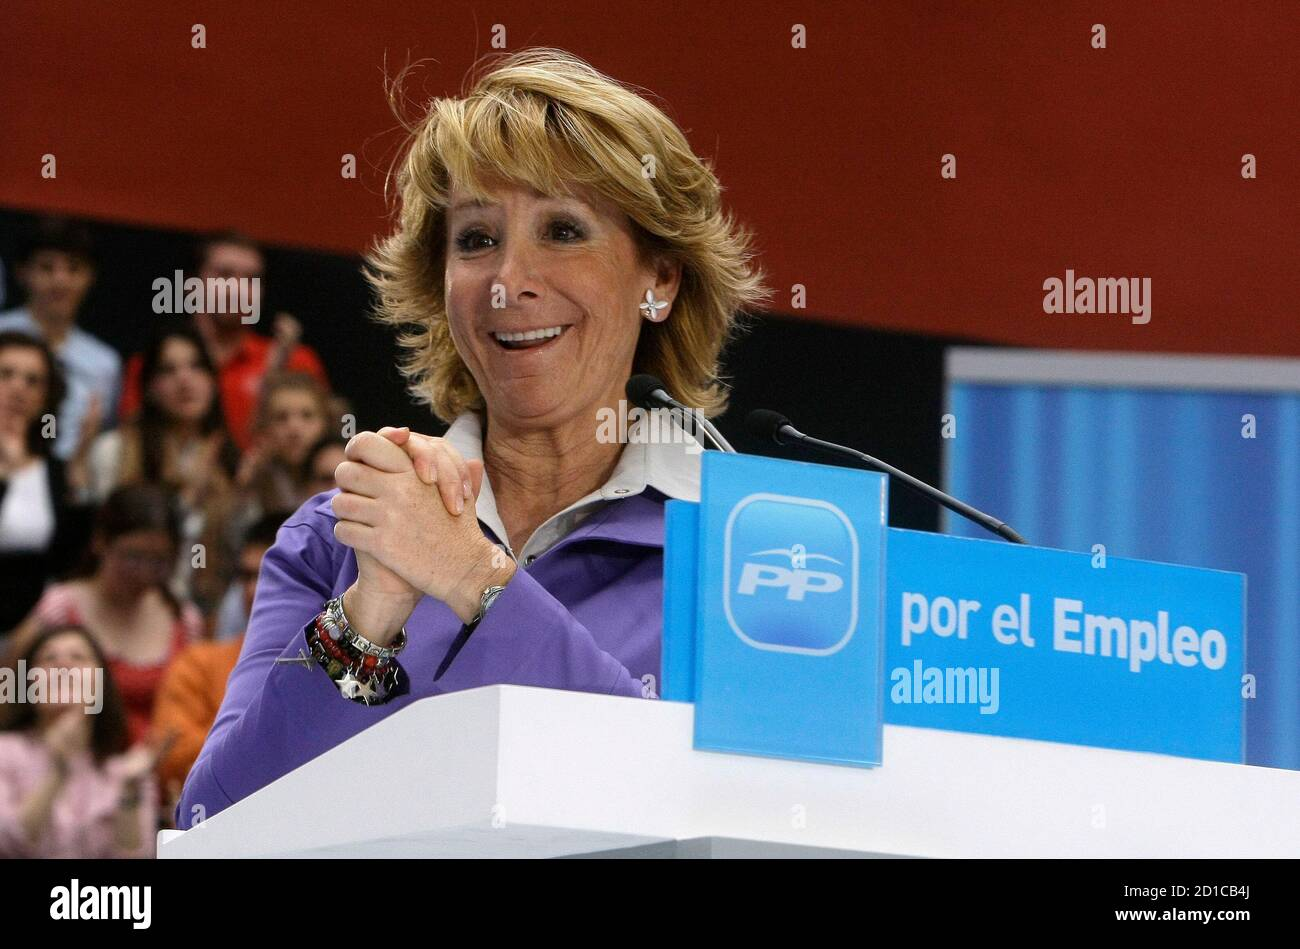 Madrid's regional President Esperanza Aguirre acknowledges applause during a rally about employment in Madrid April 25,  2009.  Banner reads 'For employment'. REUTERS/Andrea Comas (SPAIN POLITICS EMPLOYMENT BUSINESS) Banque D'Images